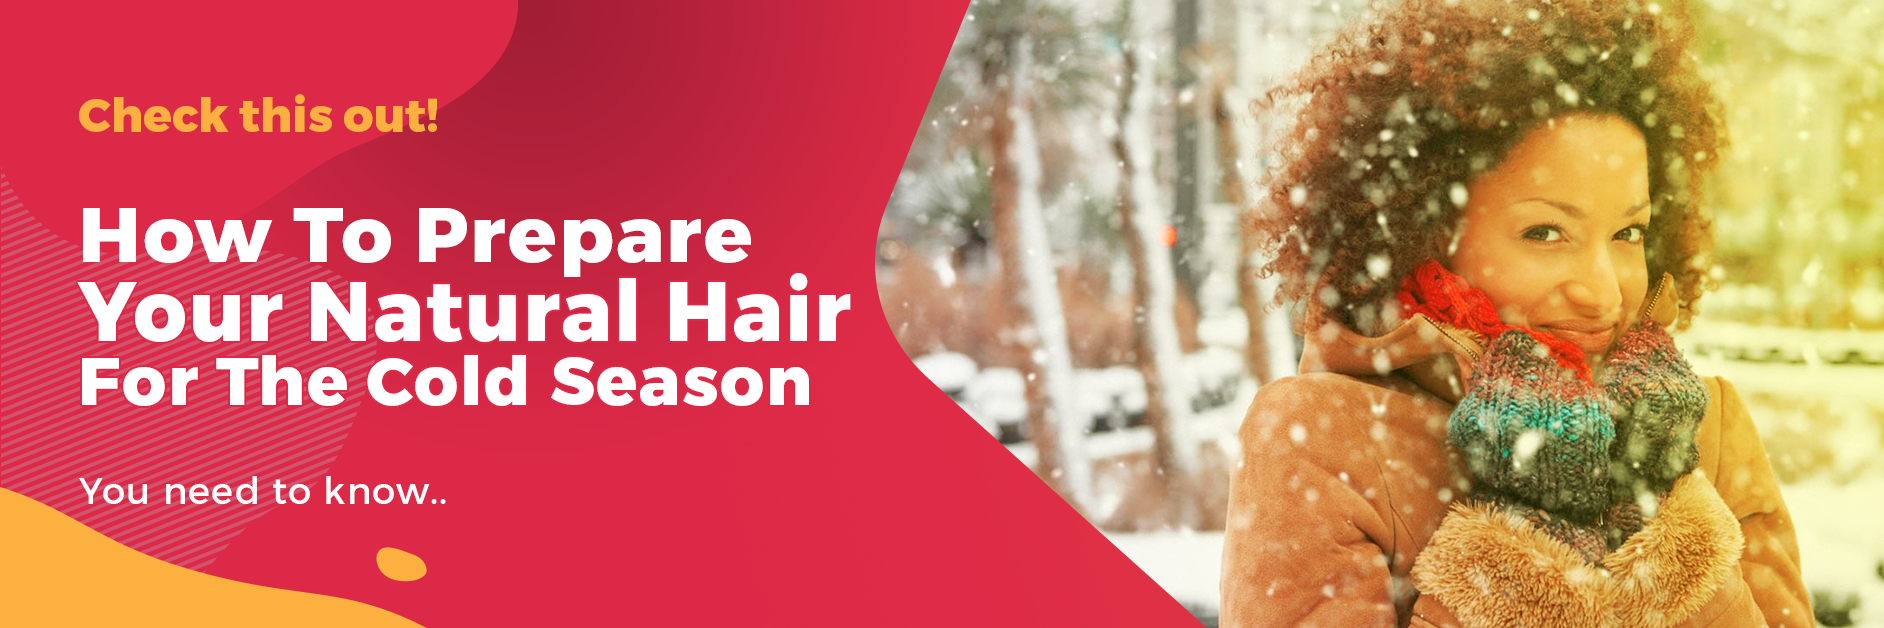 How to Prepare your Natural Hair for the Cold Season